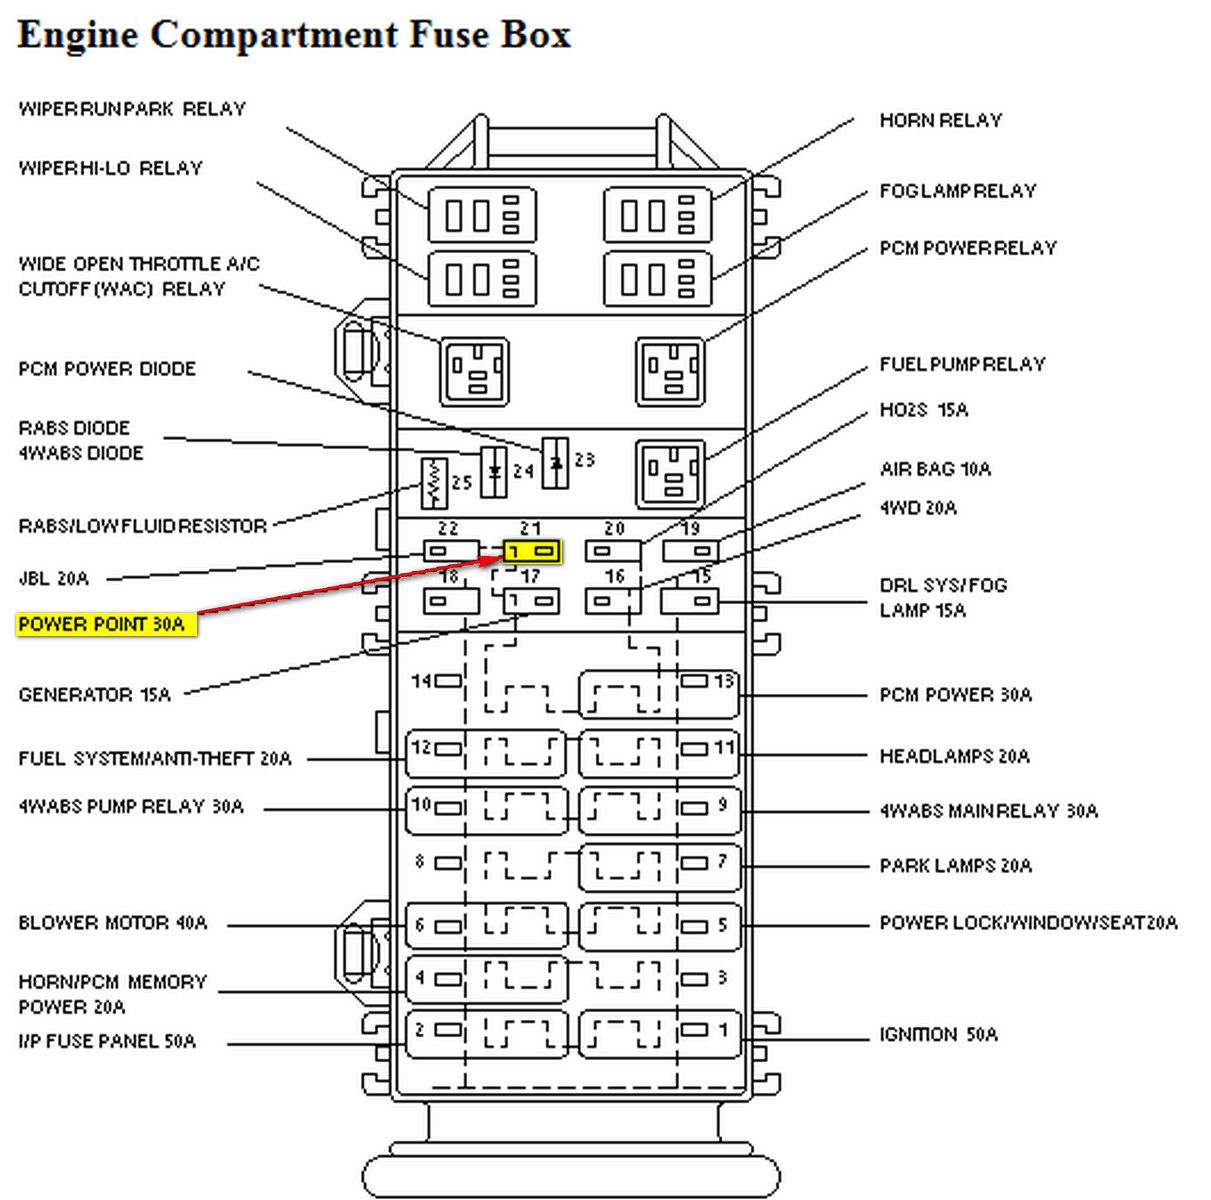 8a55967da7ae1bd251b795845886bd24 2002 ford ranger fuse diagram 1997 ford ranger fuse box diagram 2002 ford econoline fuse box diagram at gsmx.co